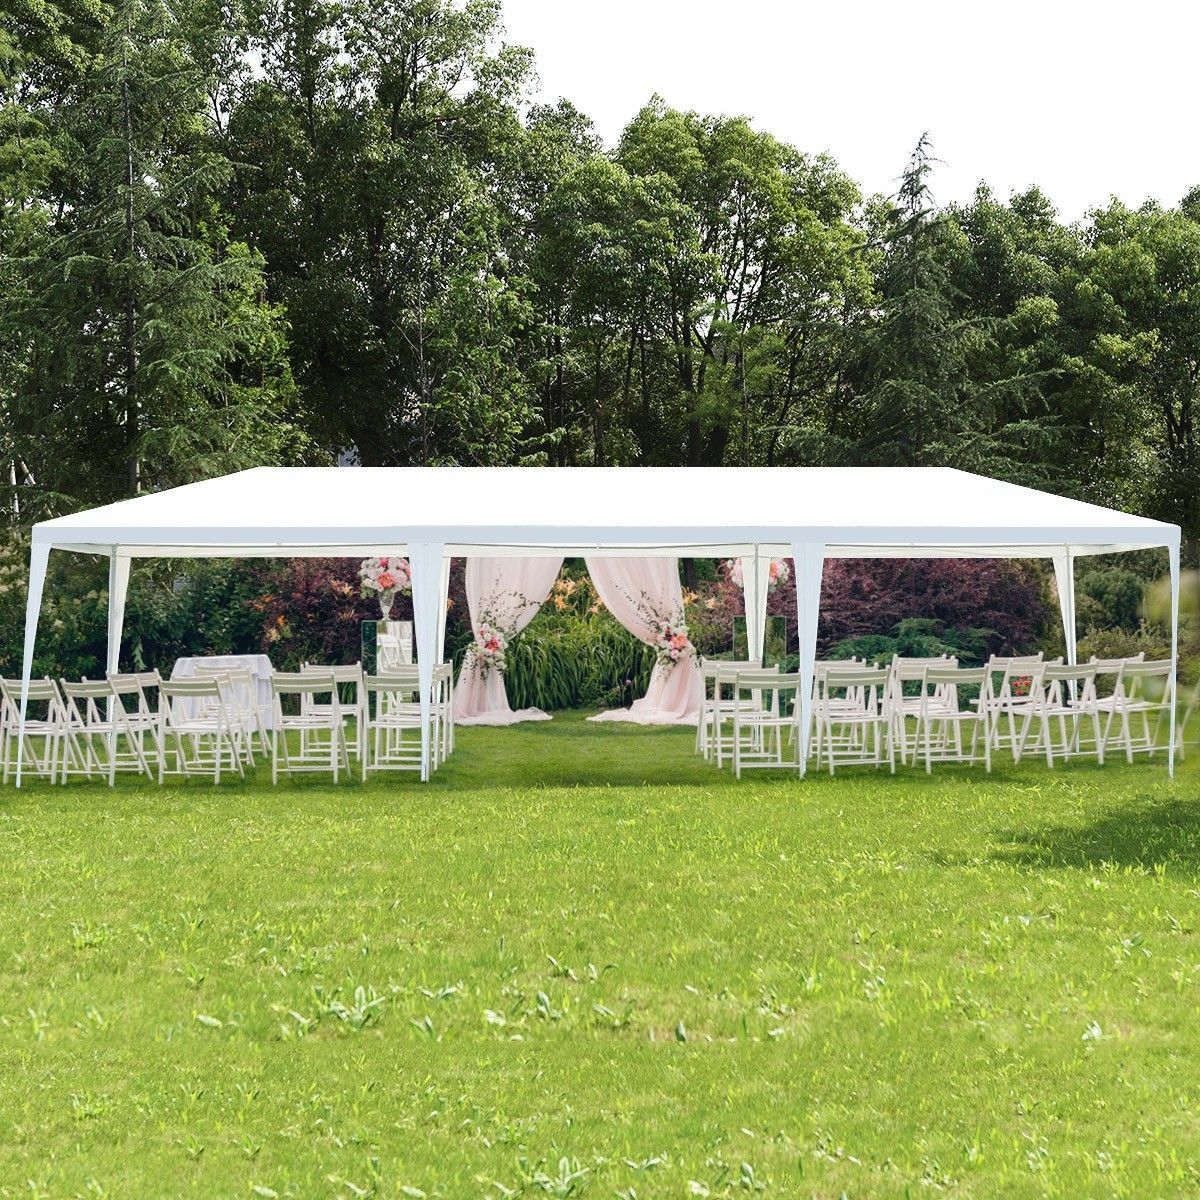 10 X 30 Outdoor Canopy Party Wedding Tent Color White Green Model 30 X10 Ft Three Side Wall Material Pol Outdoor Wedding Wedding Tent Backyard Wedding